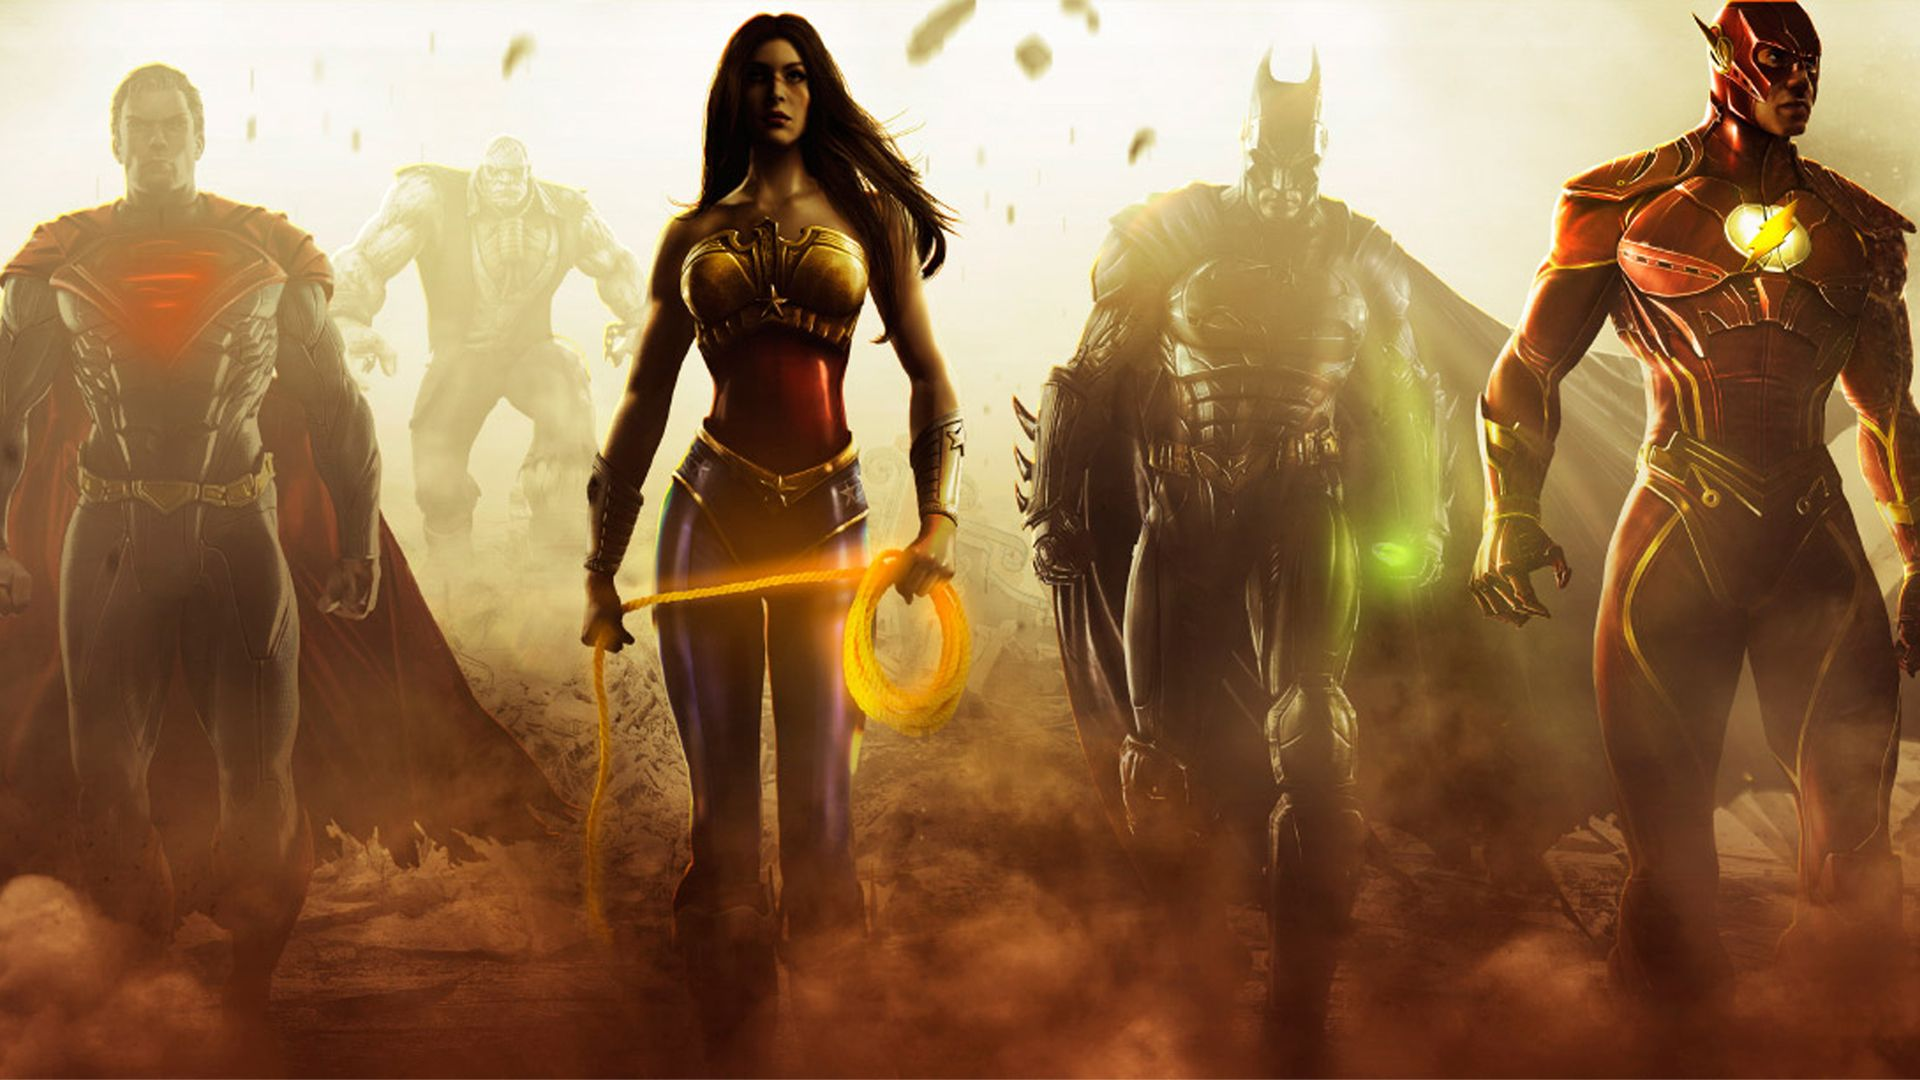 Injustice gods among us has now landed a batgirl dlc character trailer previously injustice gods among us released the dlc trailer for dc comics more